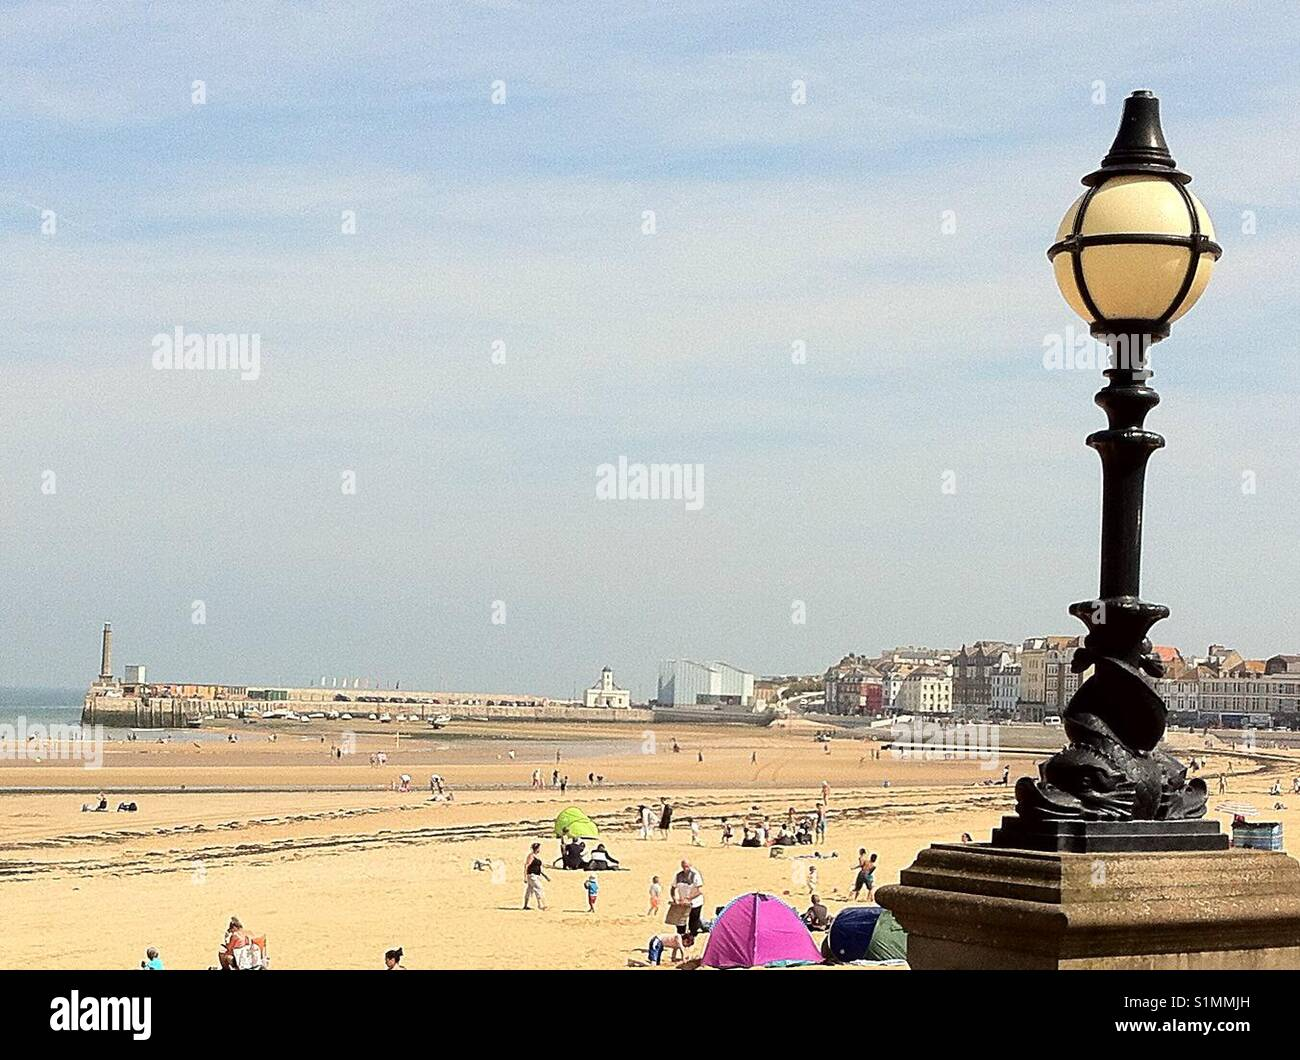 Families enjoying the beach in summer holidays, Margate beach, Kent, uk. - Stock Image